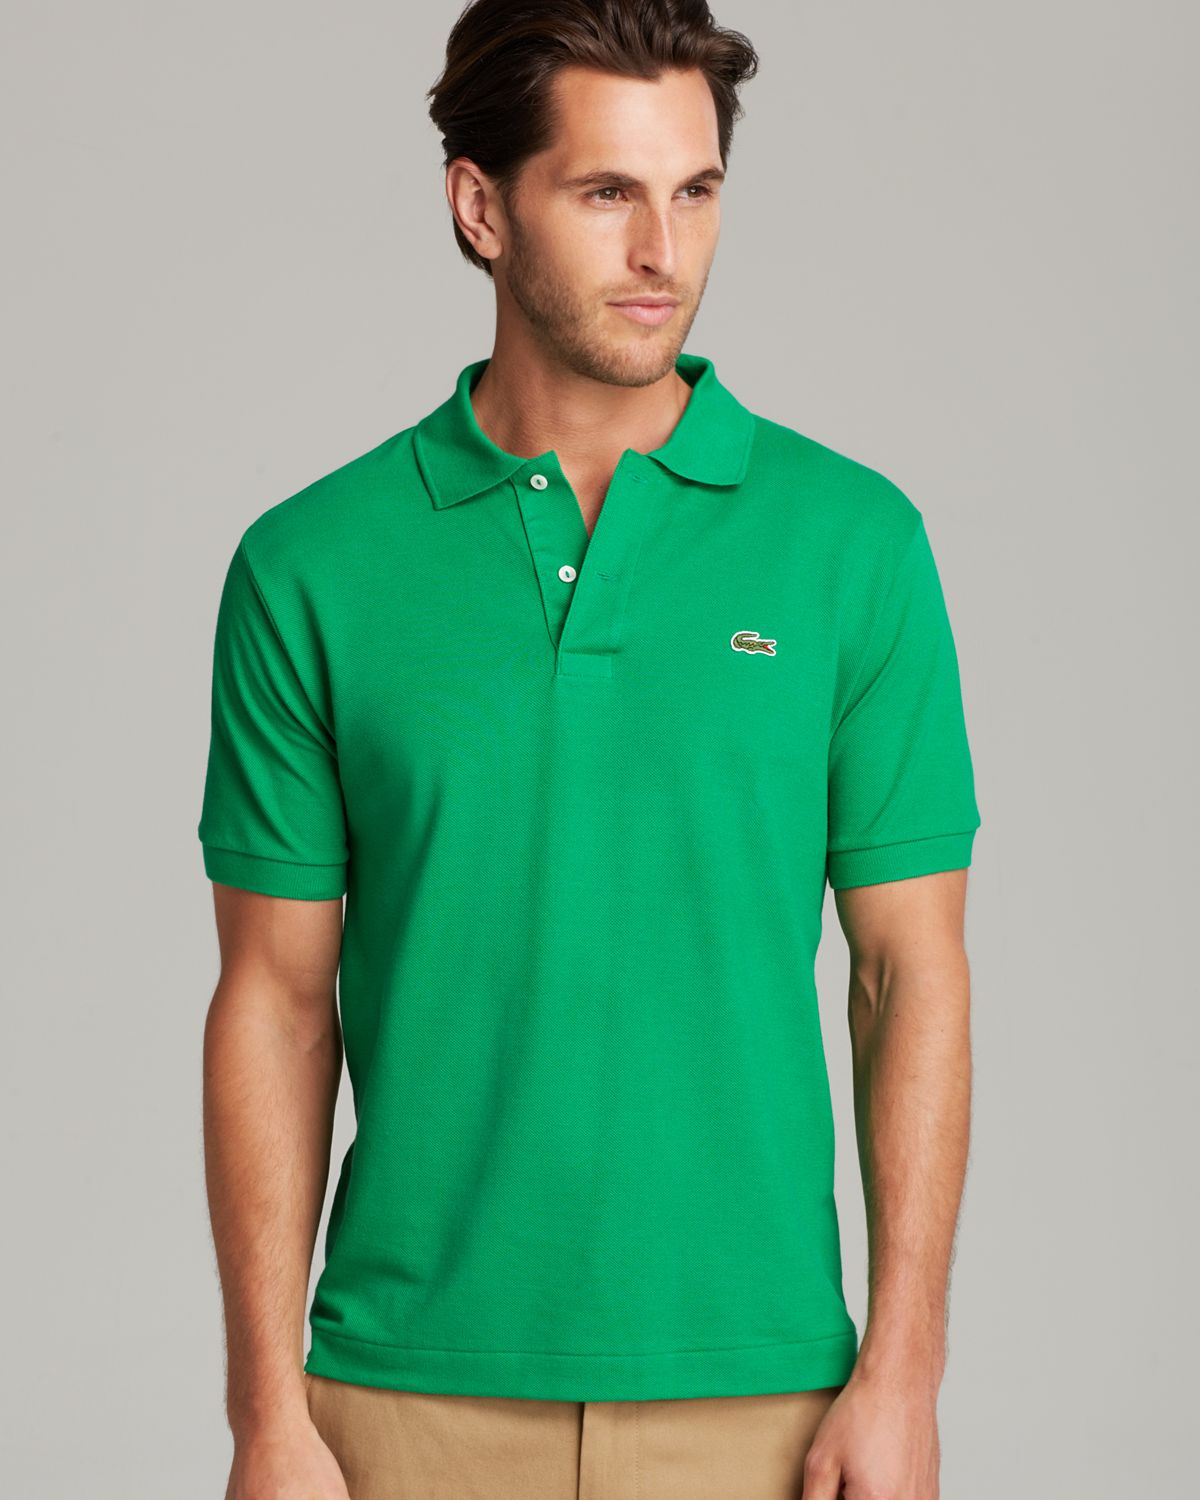 9d792c4f7f Lacoste Pique Polo - Classic Fit in Green for Men - Lyst